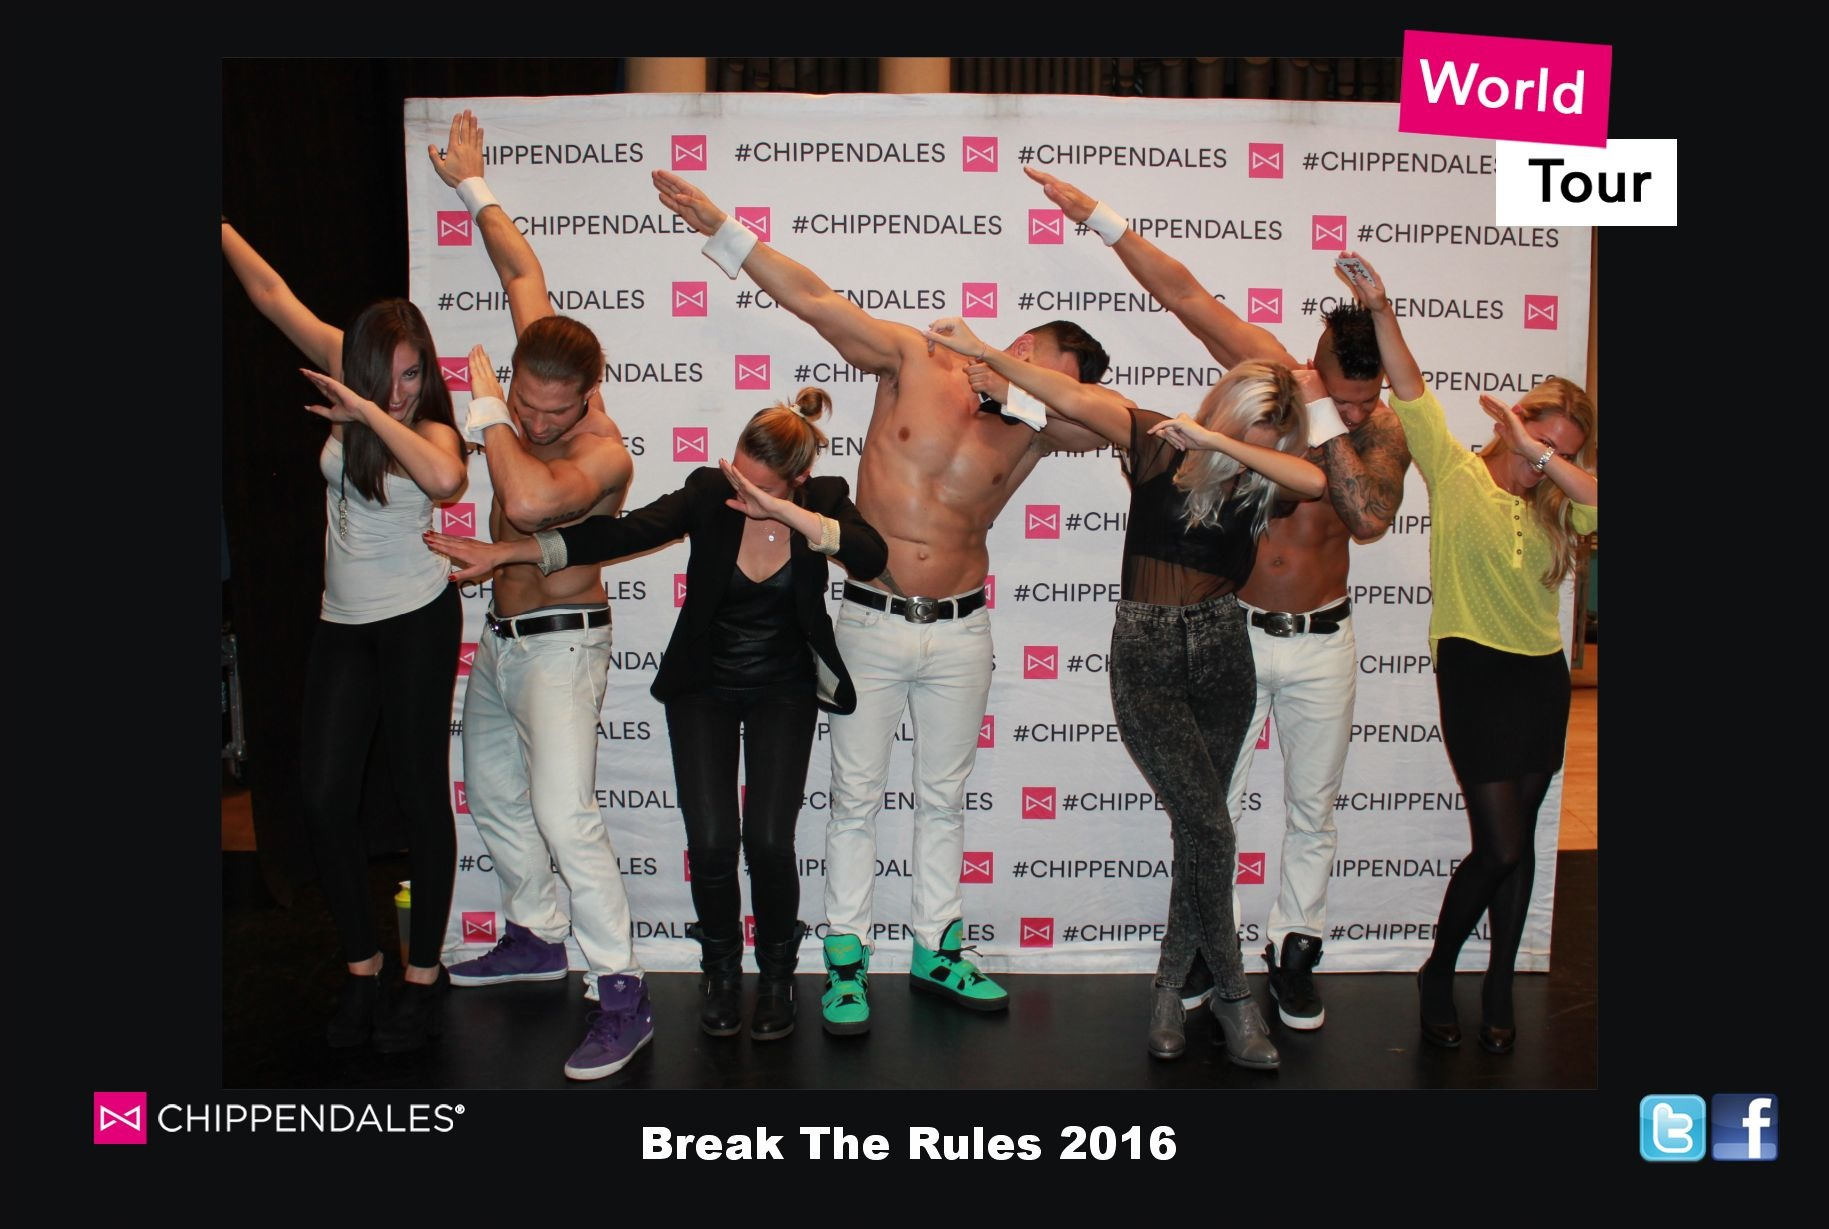 Chippendales Break The Rules Tour 2016